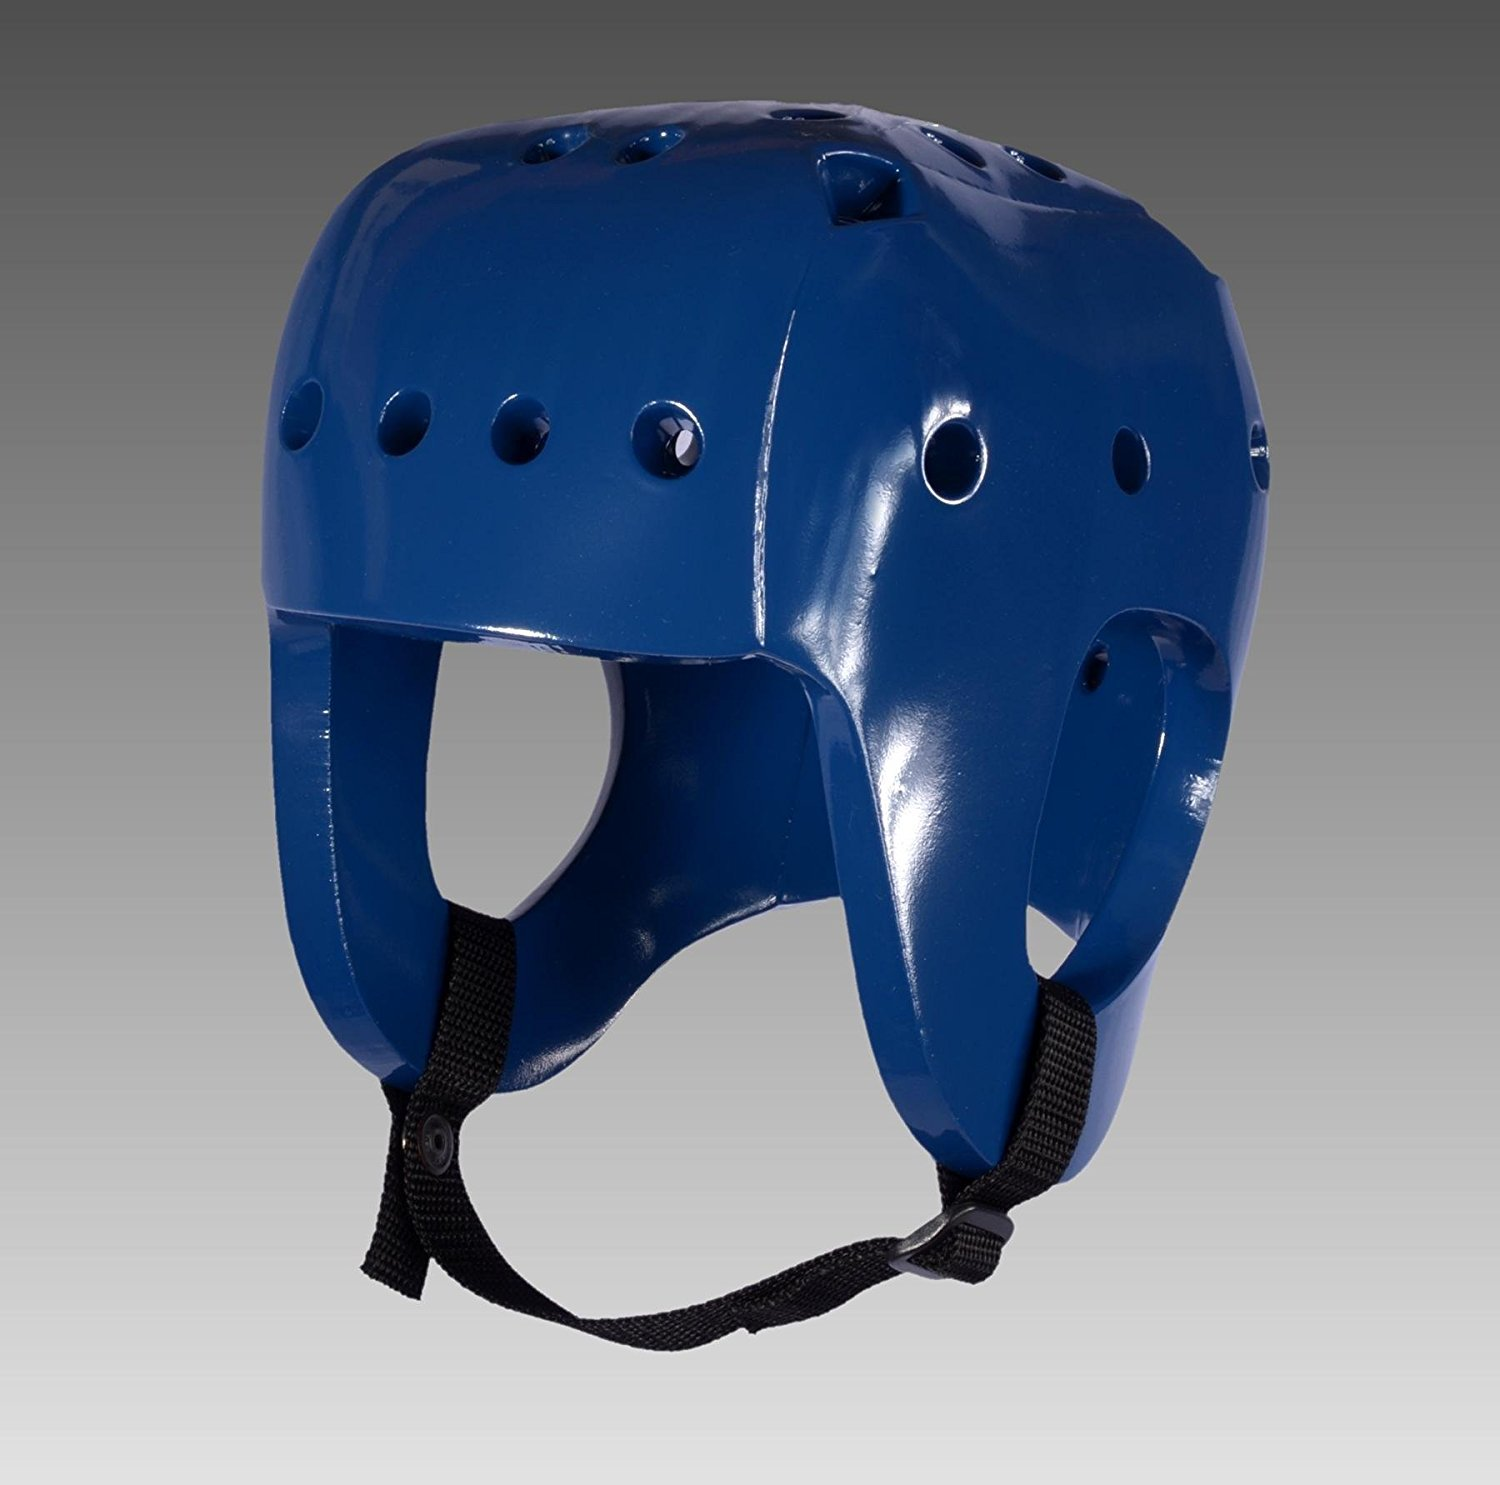 Image of Adult Helmets ALIMED 70537 Helmet Full Coverage Royal